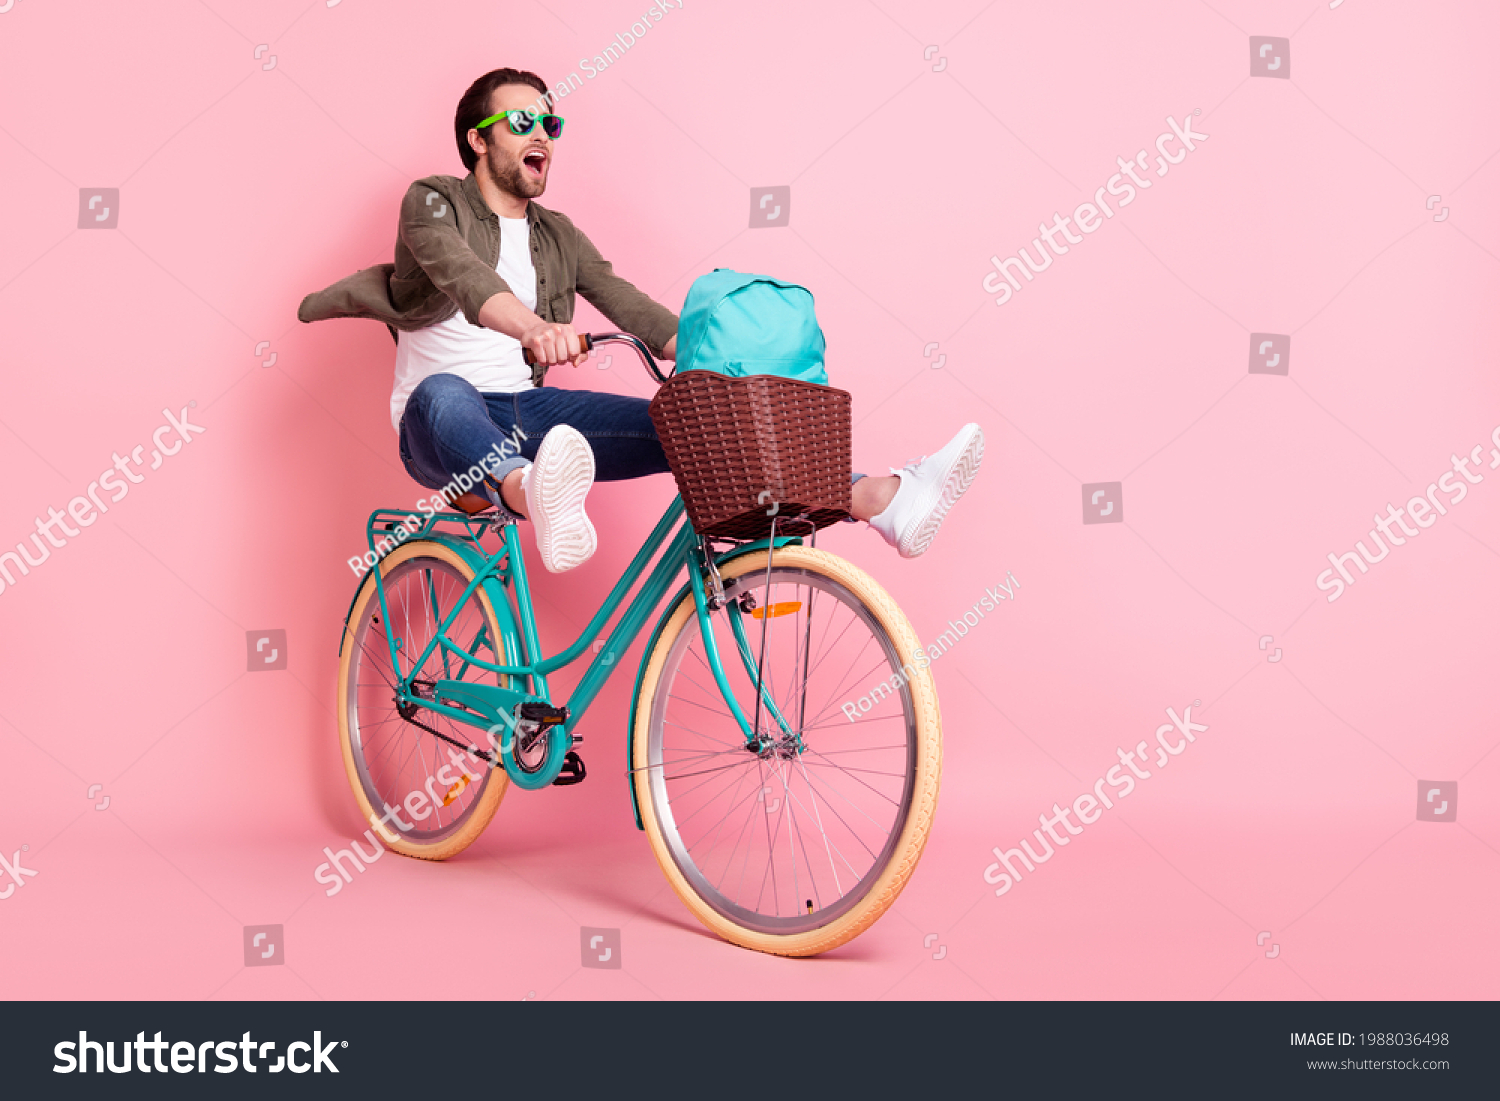 Photo of sweet cute guy dressed brown shirt dark eyeglasses riding bike backpack looking empty space isolated pink color background #1988036498